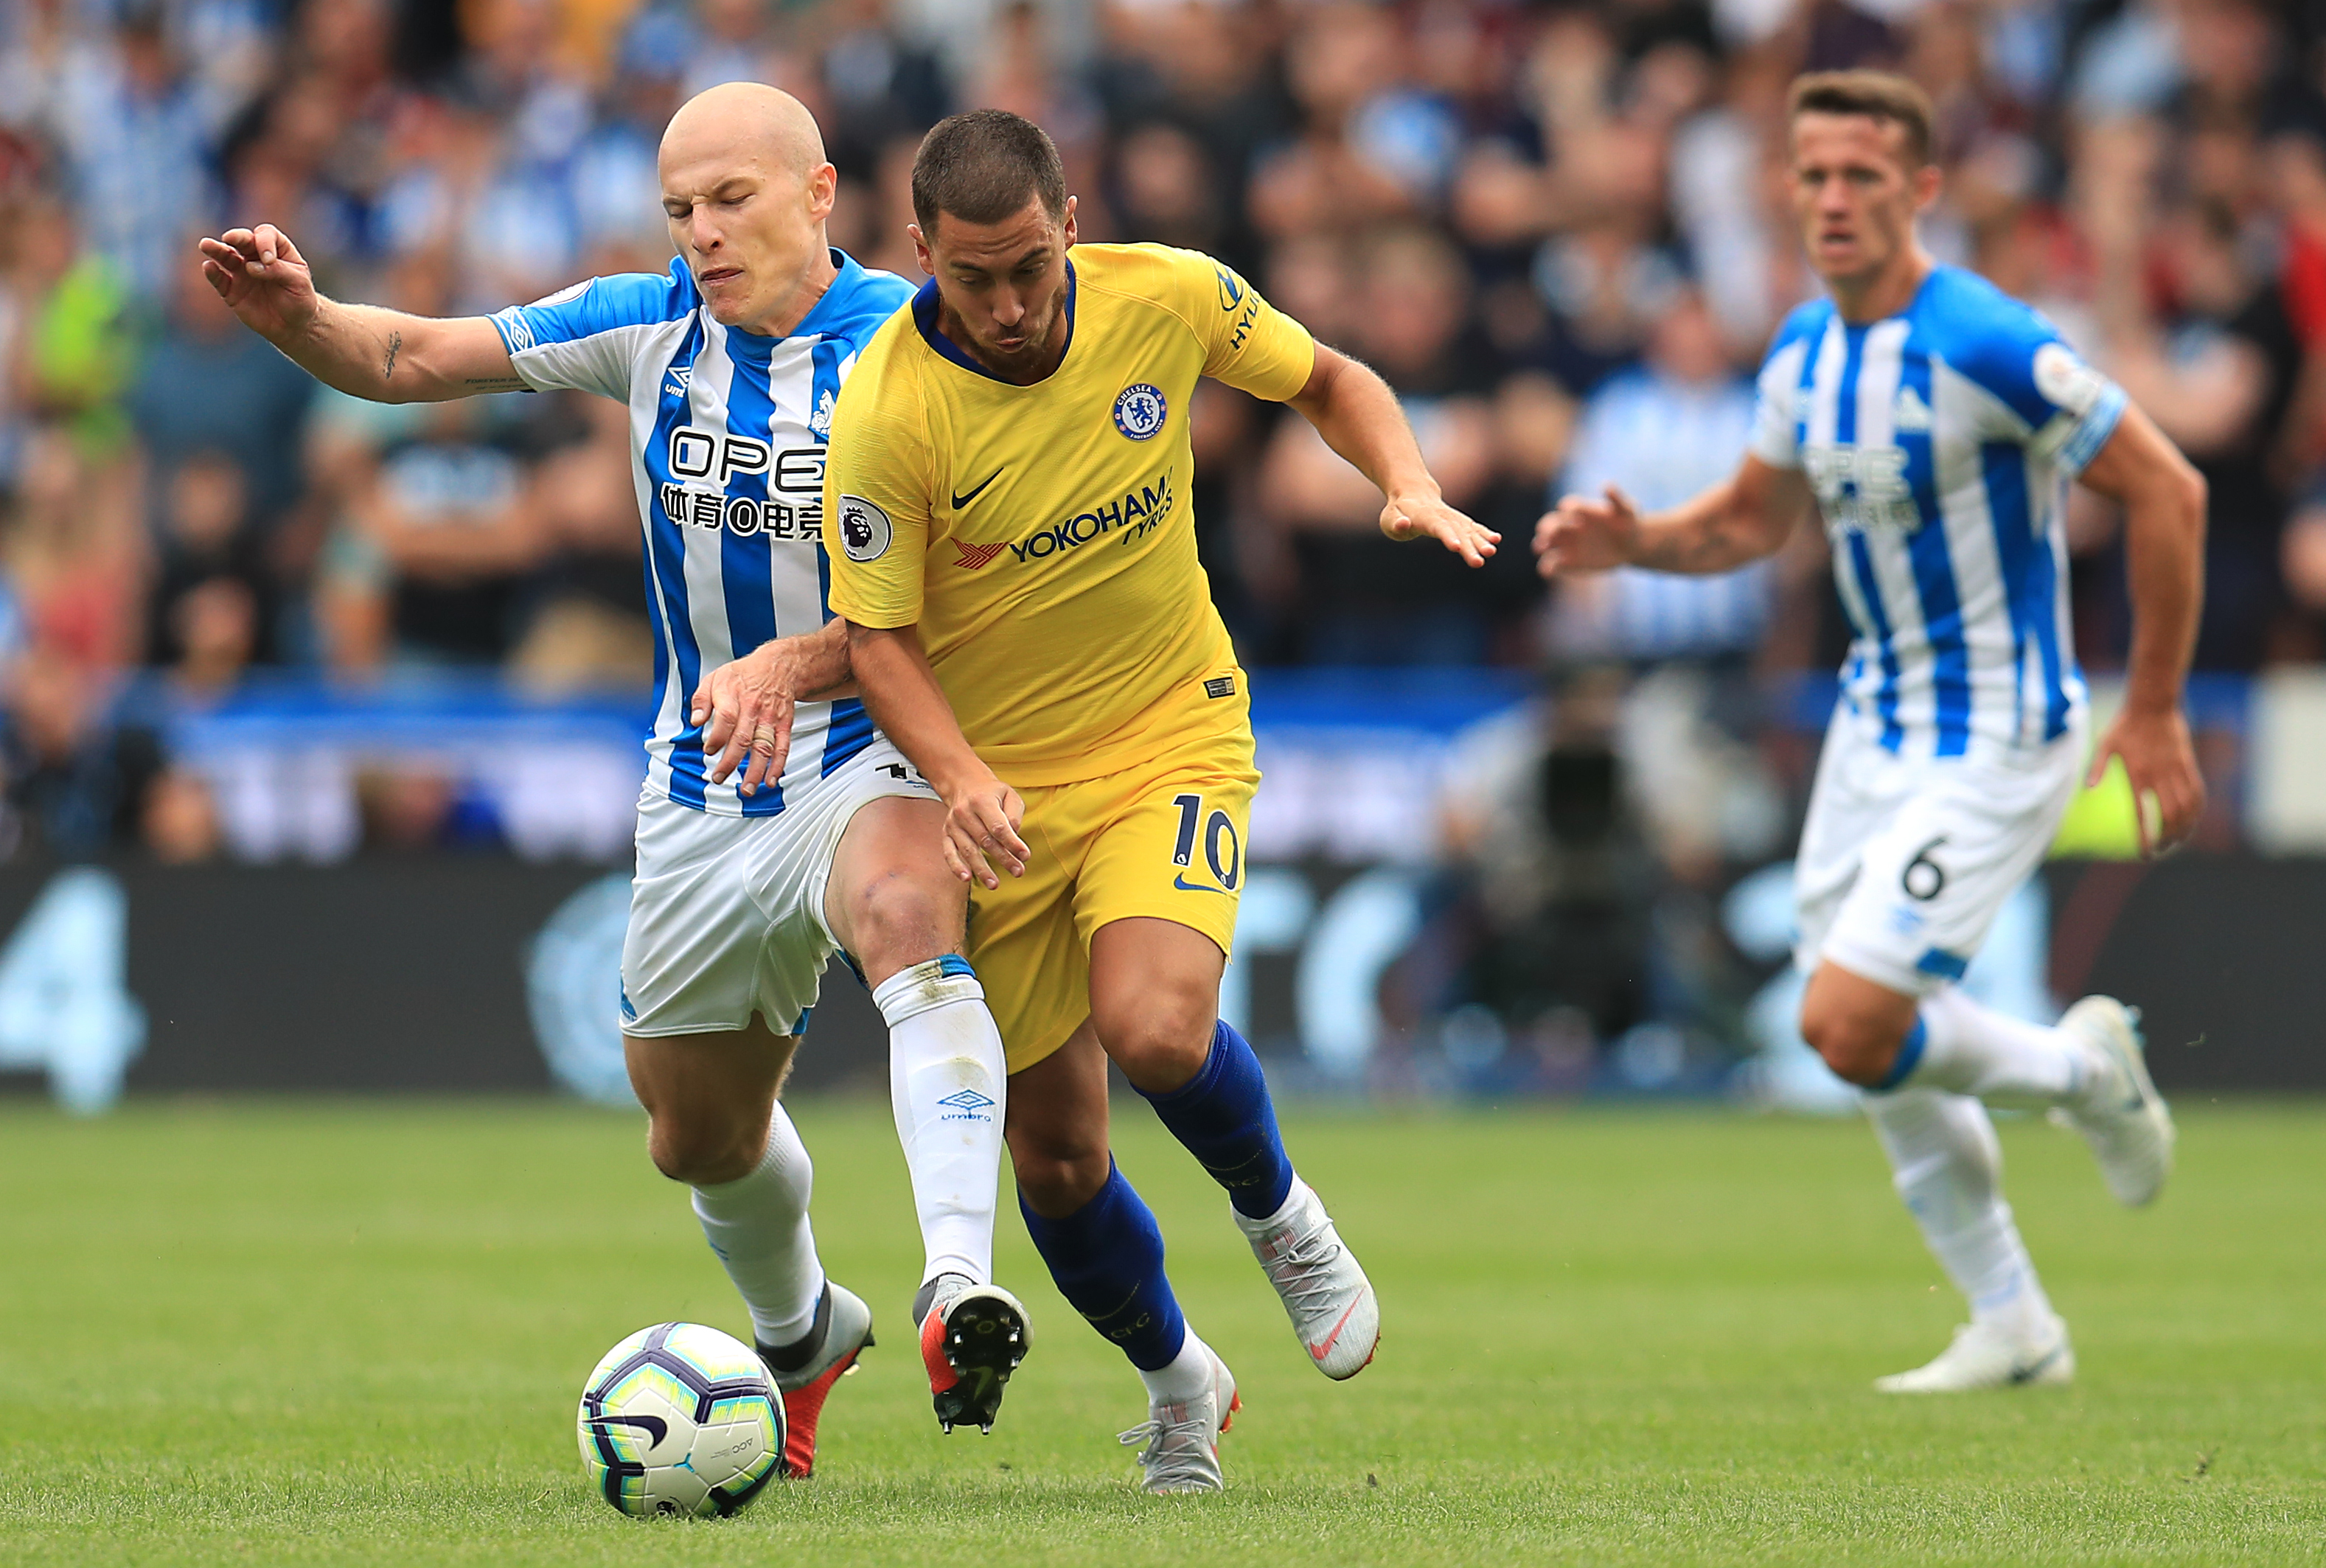 Hazard in action for Chelsea. Image: PA